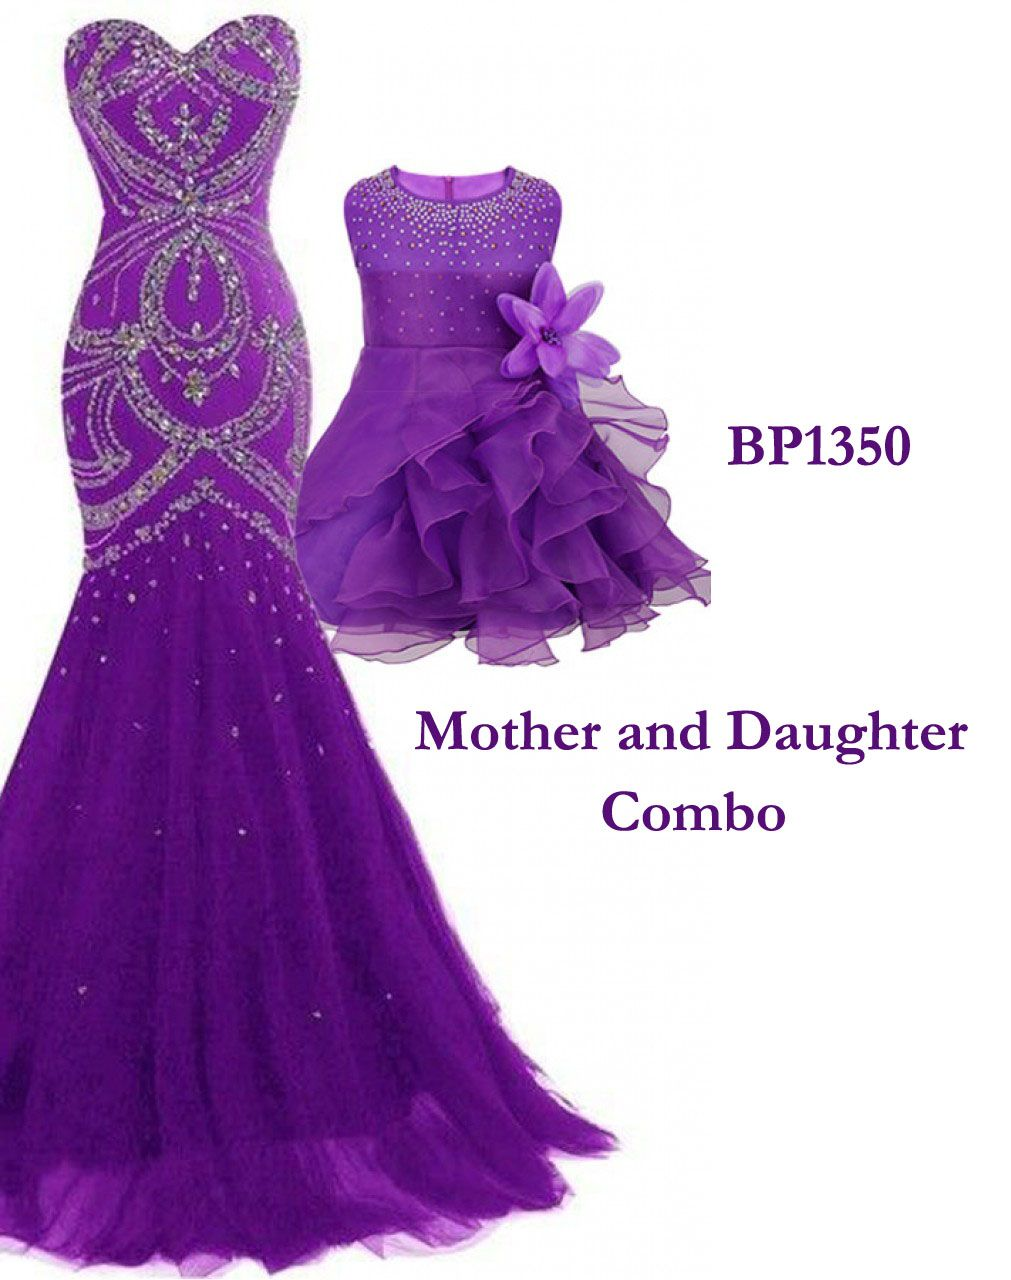 b8f1f884d0cd Beautiful Mother and Daughter matching dresses available This combo  includes two dresses ONE for MOTHER and One for DAUGHTER. Daughter dress  possible from ...